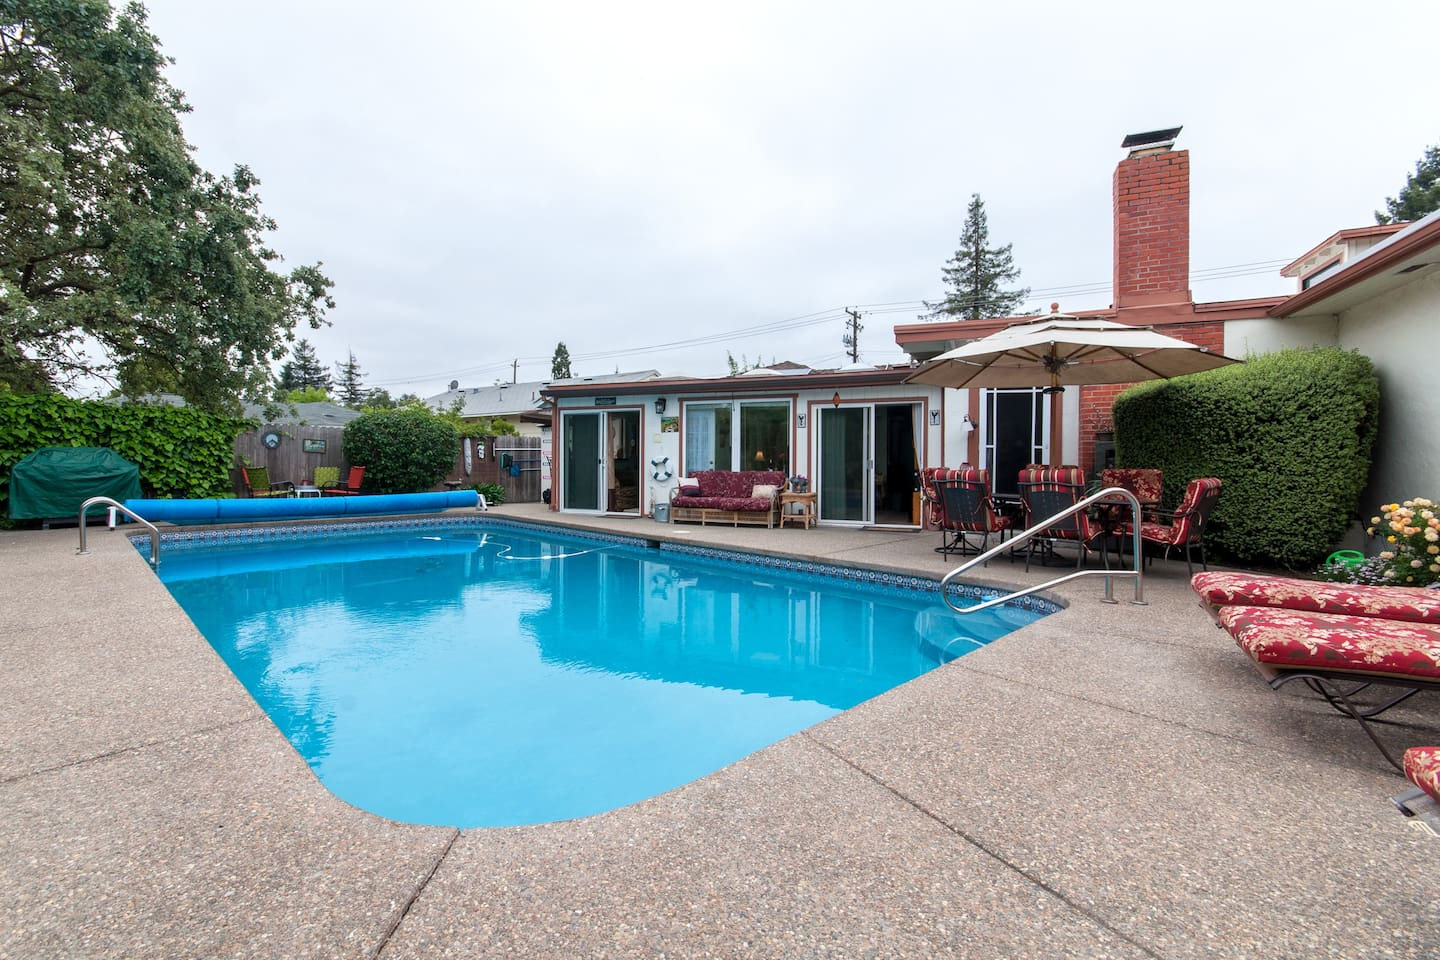 Pool is heated mid-May through mid-October.